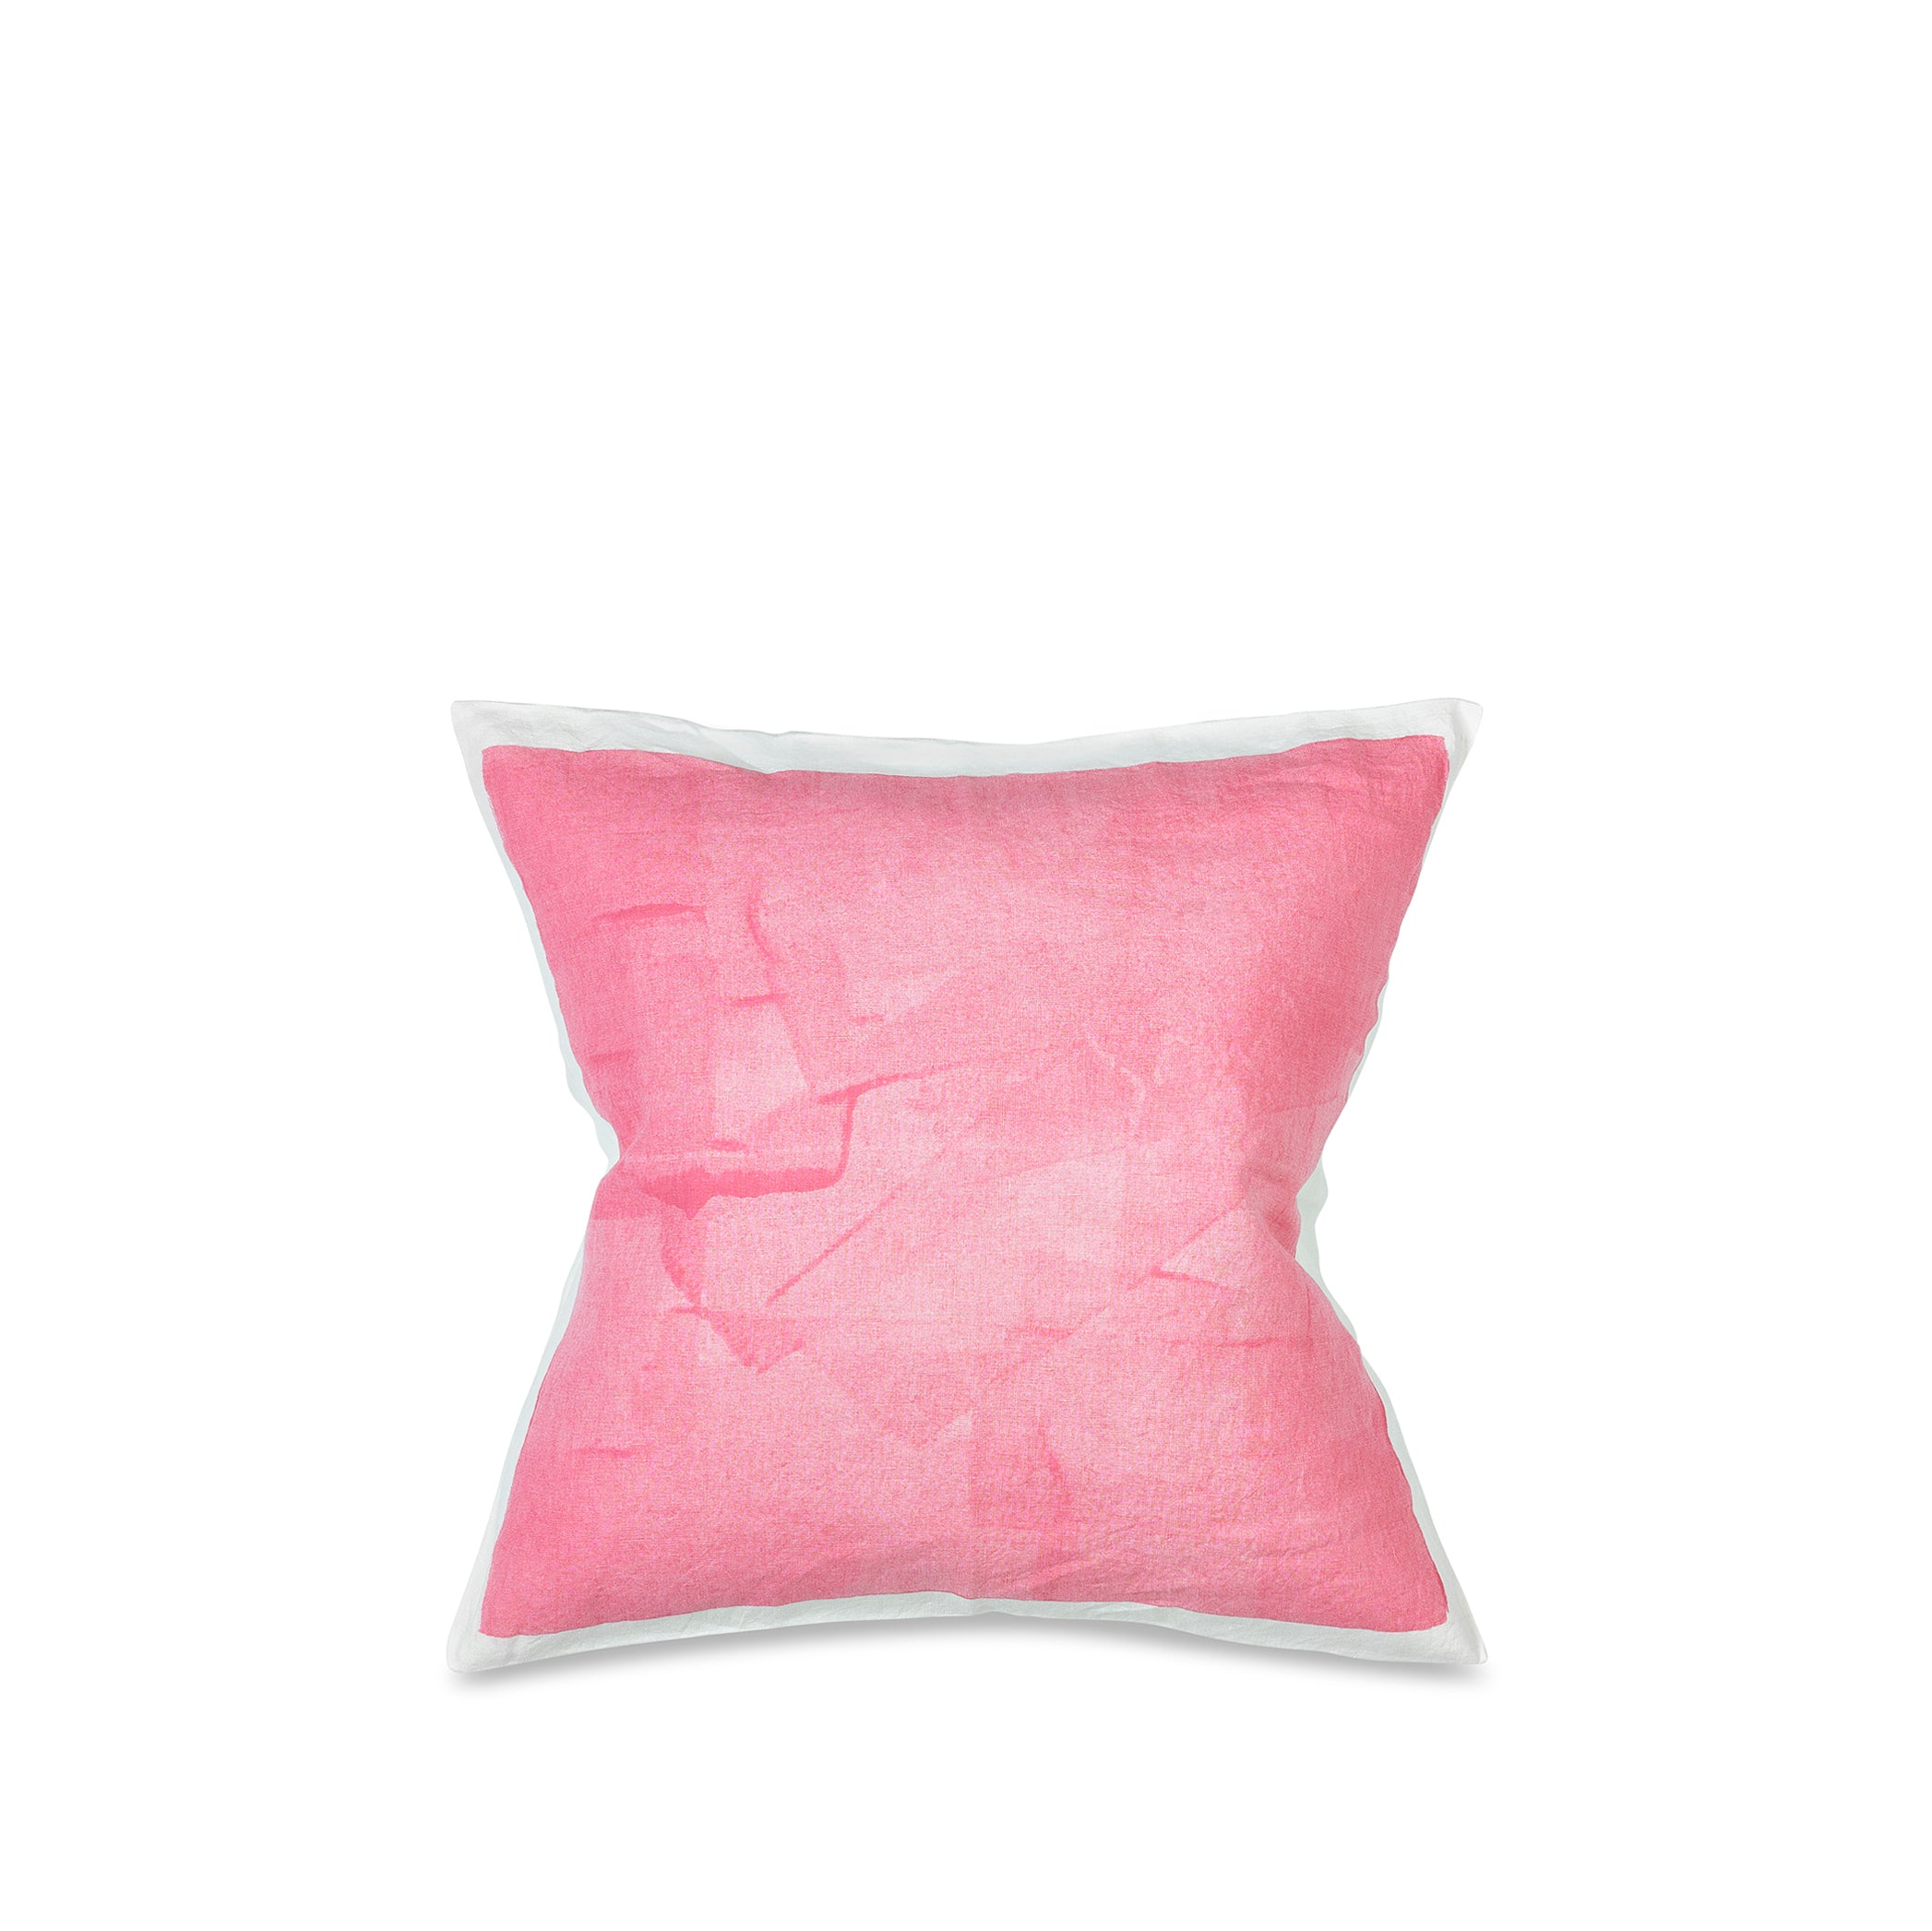 Hand Painted Linen Cushion in Rose Pink, 50cm x 50cm